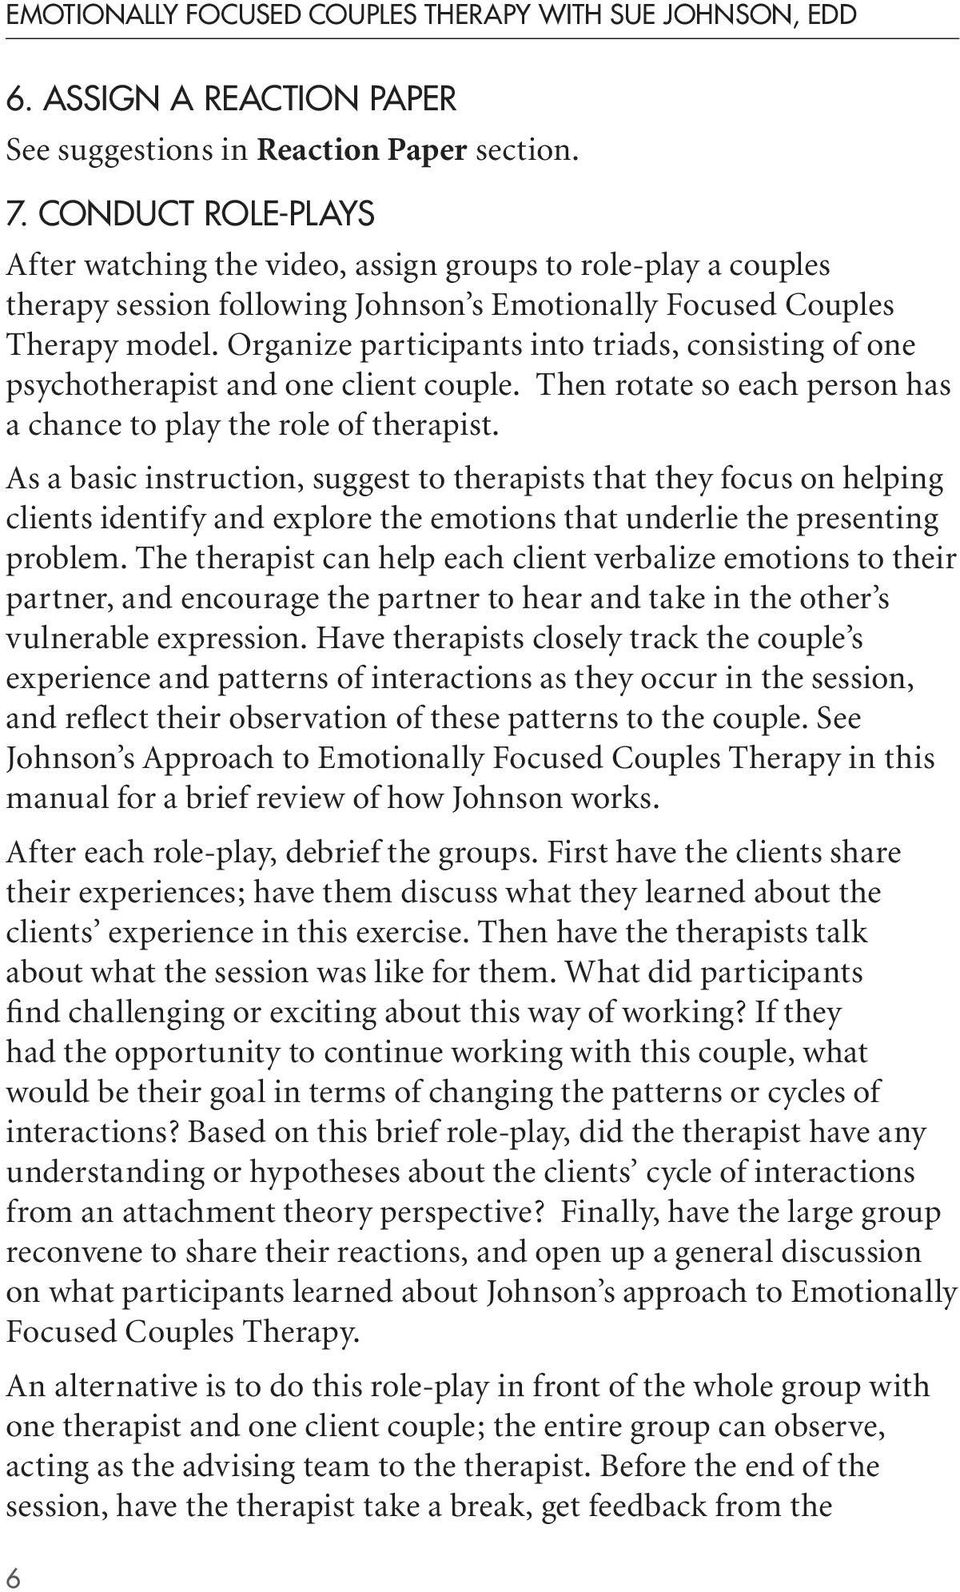 Organize participants into triads, consisting of one psychotherapist and one client couple. Then rotate so each person has a chance to play the role of therapist.